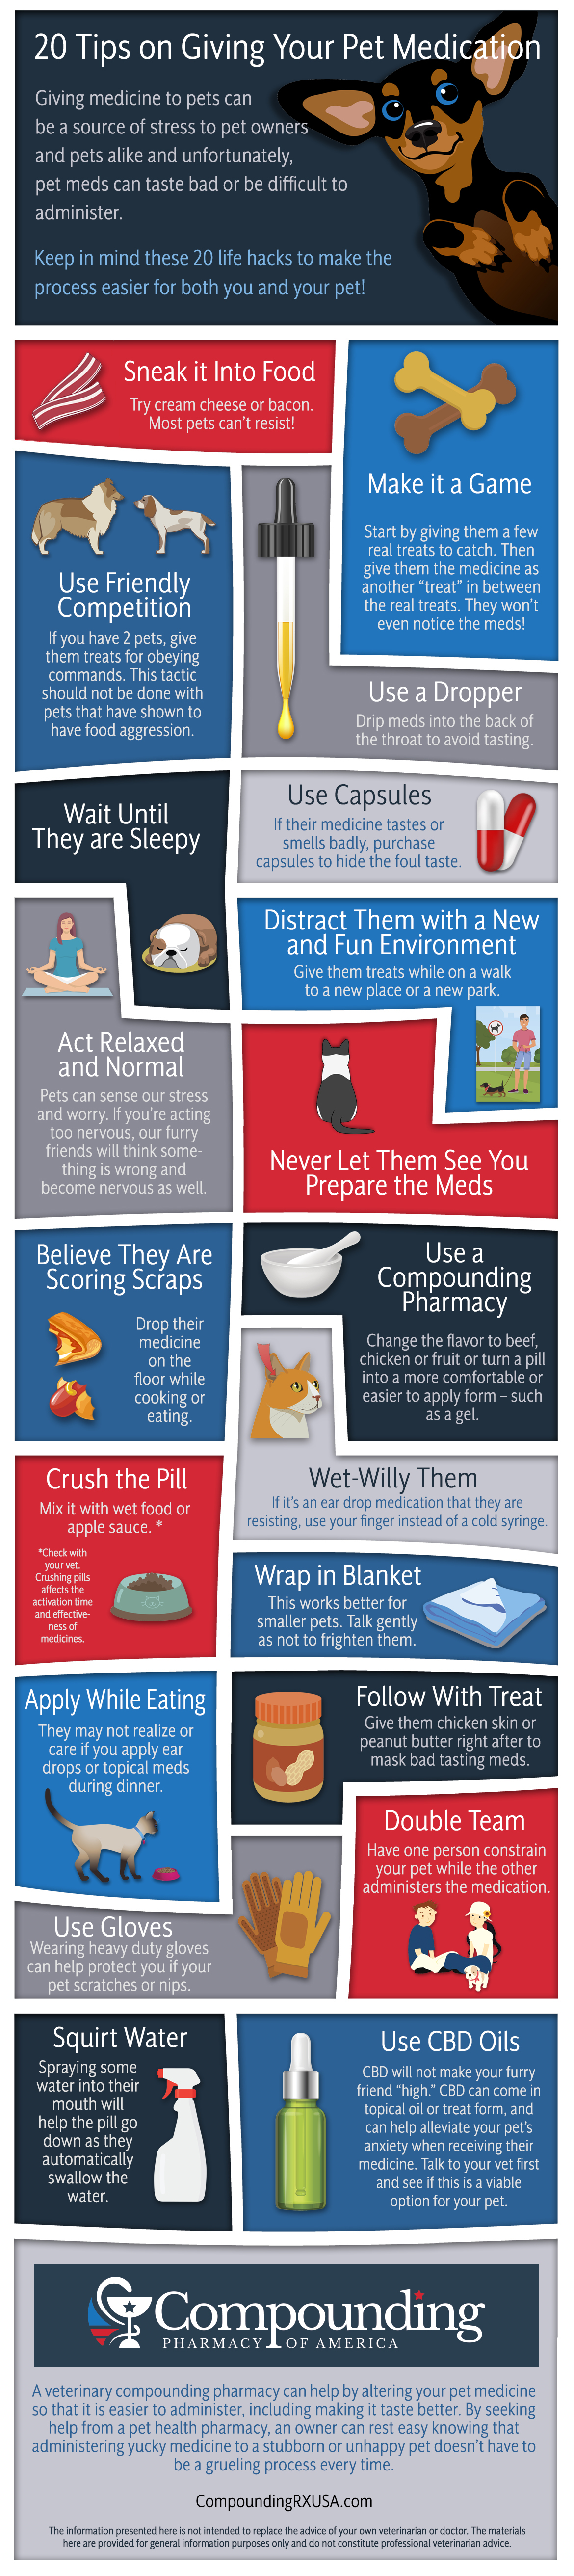 Originally Posted at:  https://compoundingrxusa.com/blog/20-tips-on-giving-your-pet-medication-infographic/